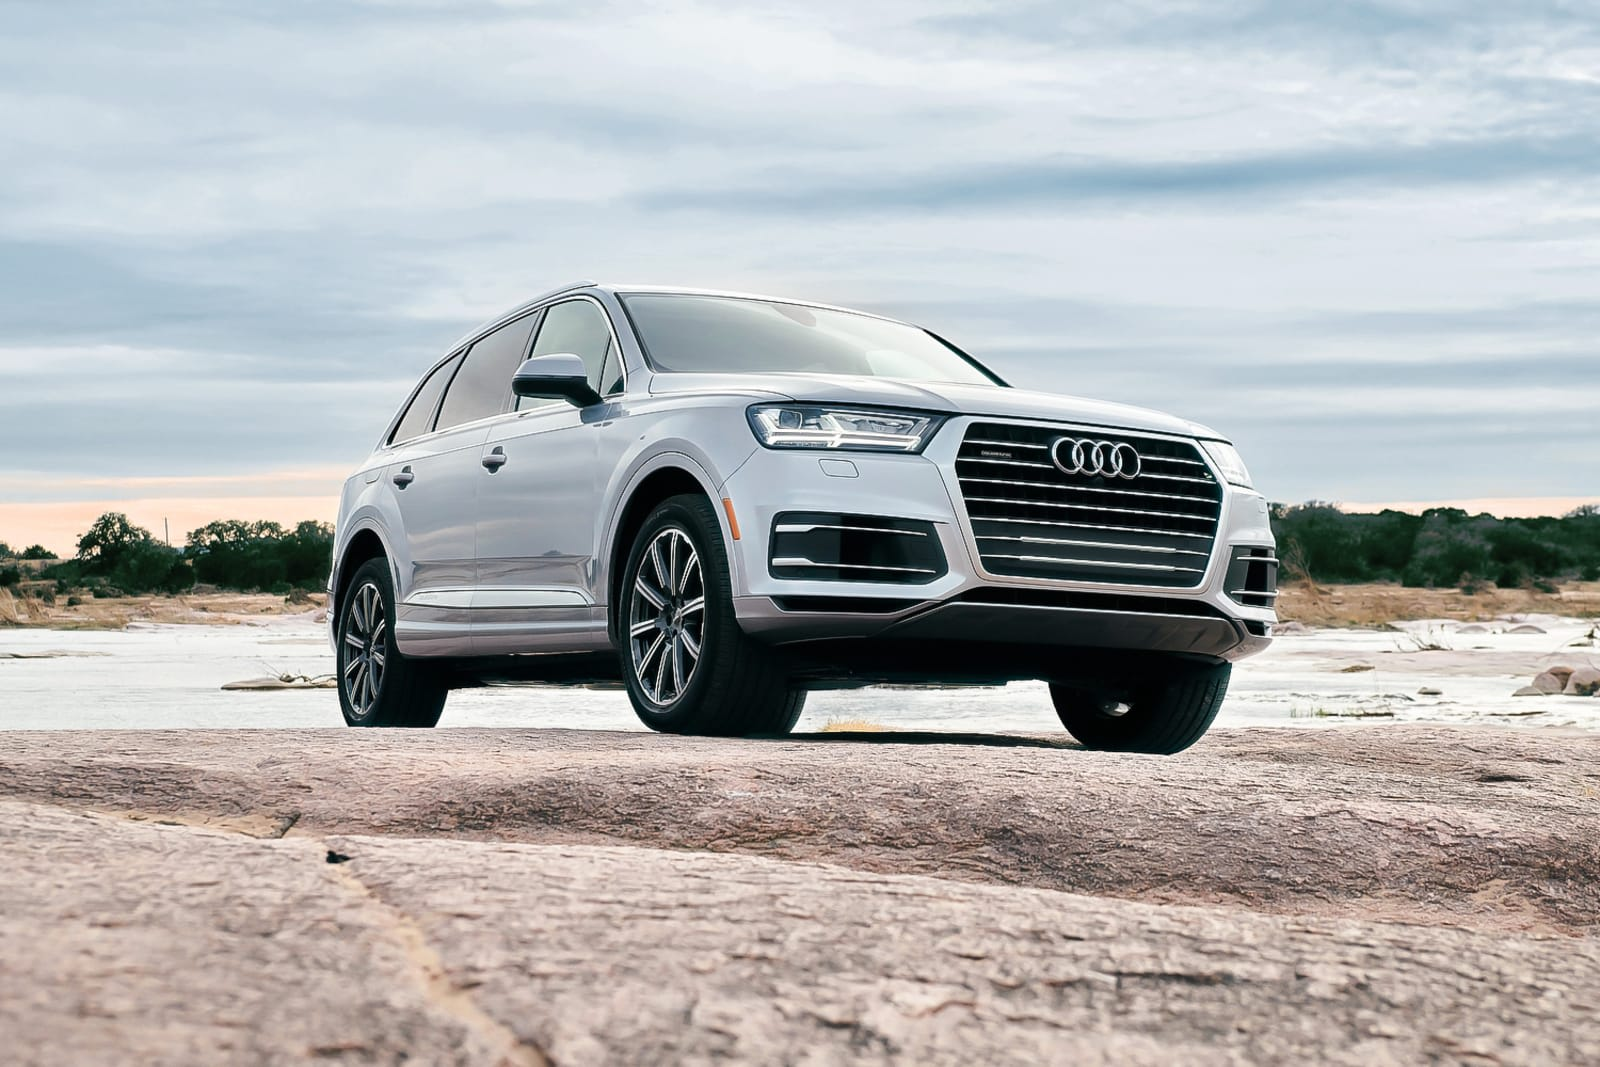 Audi Adds Q7 Suv To Its Silvercar On Demand Rental Service